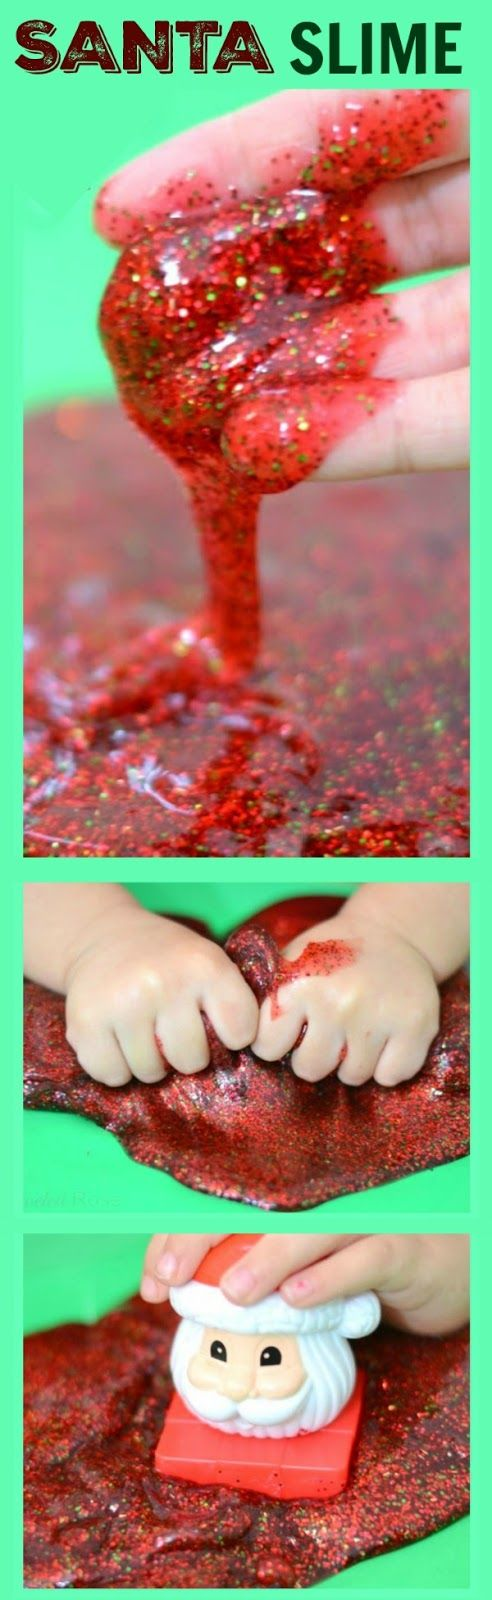 SANTA SLIME- so fun for kids & smells just like Christmas!                                                                                                                                                                                 More